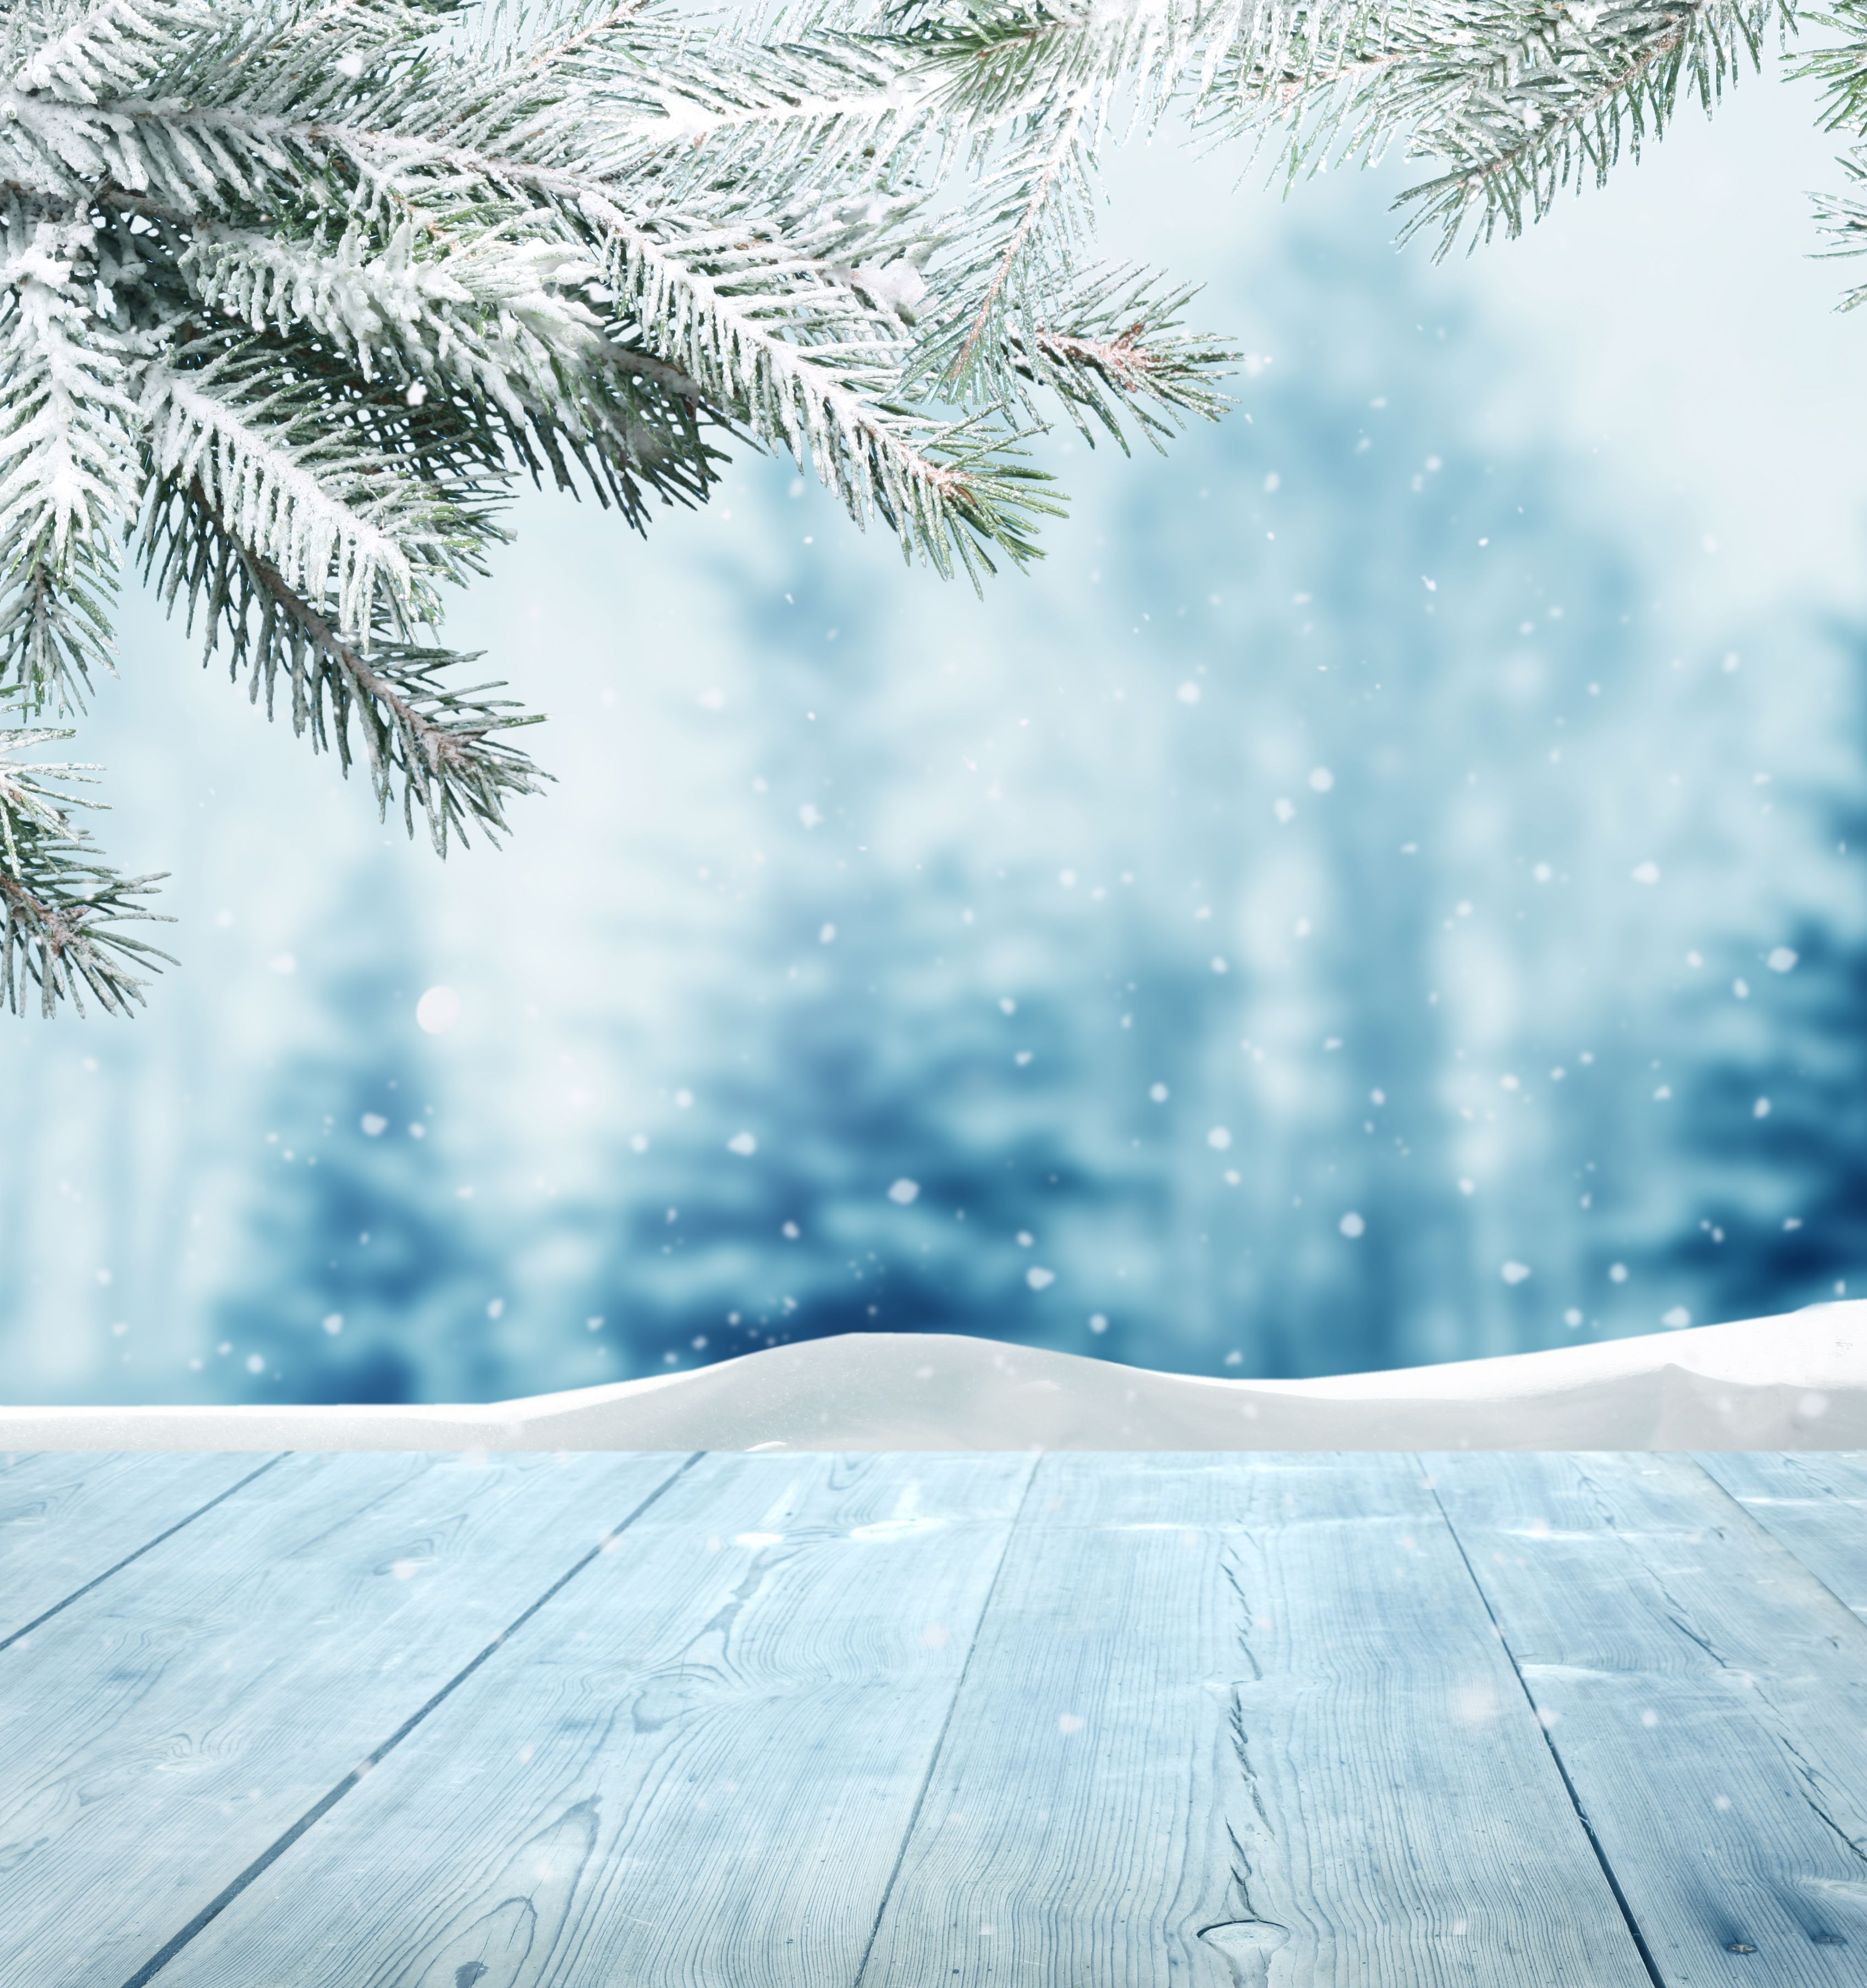 Winter Schnee Hintergrund Winter Backdrops Christmas Photography Backdrops Winter Background